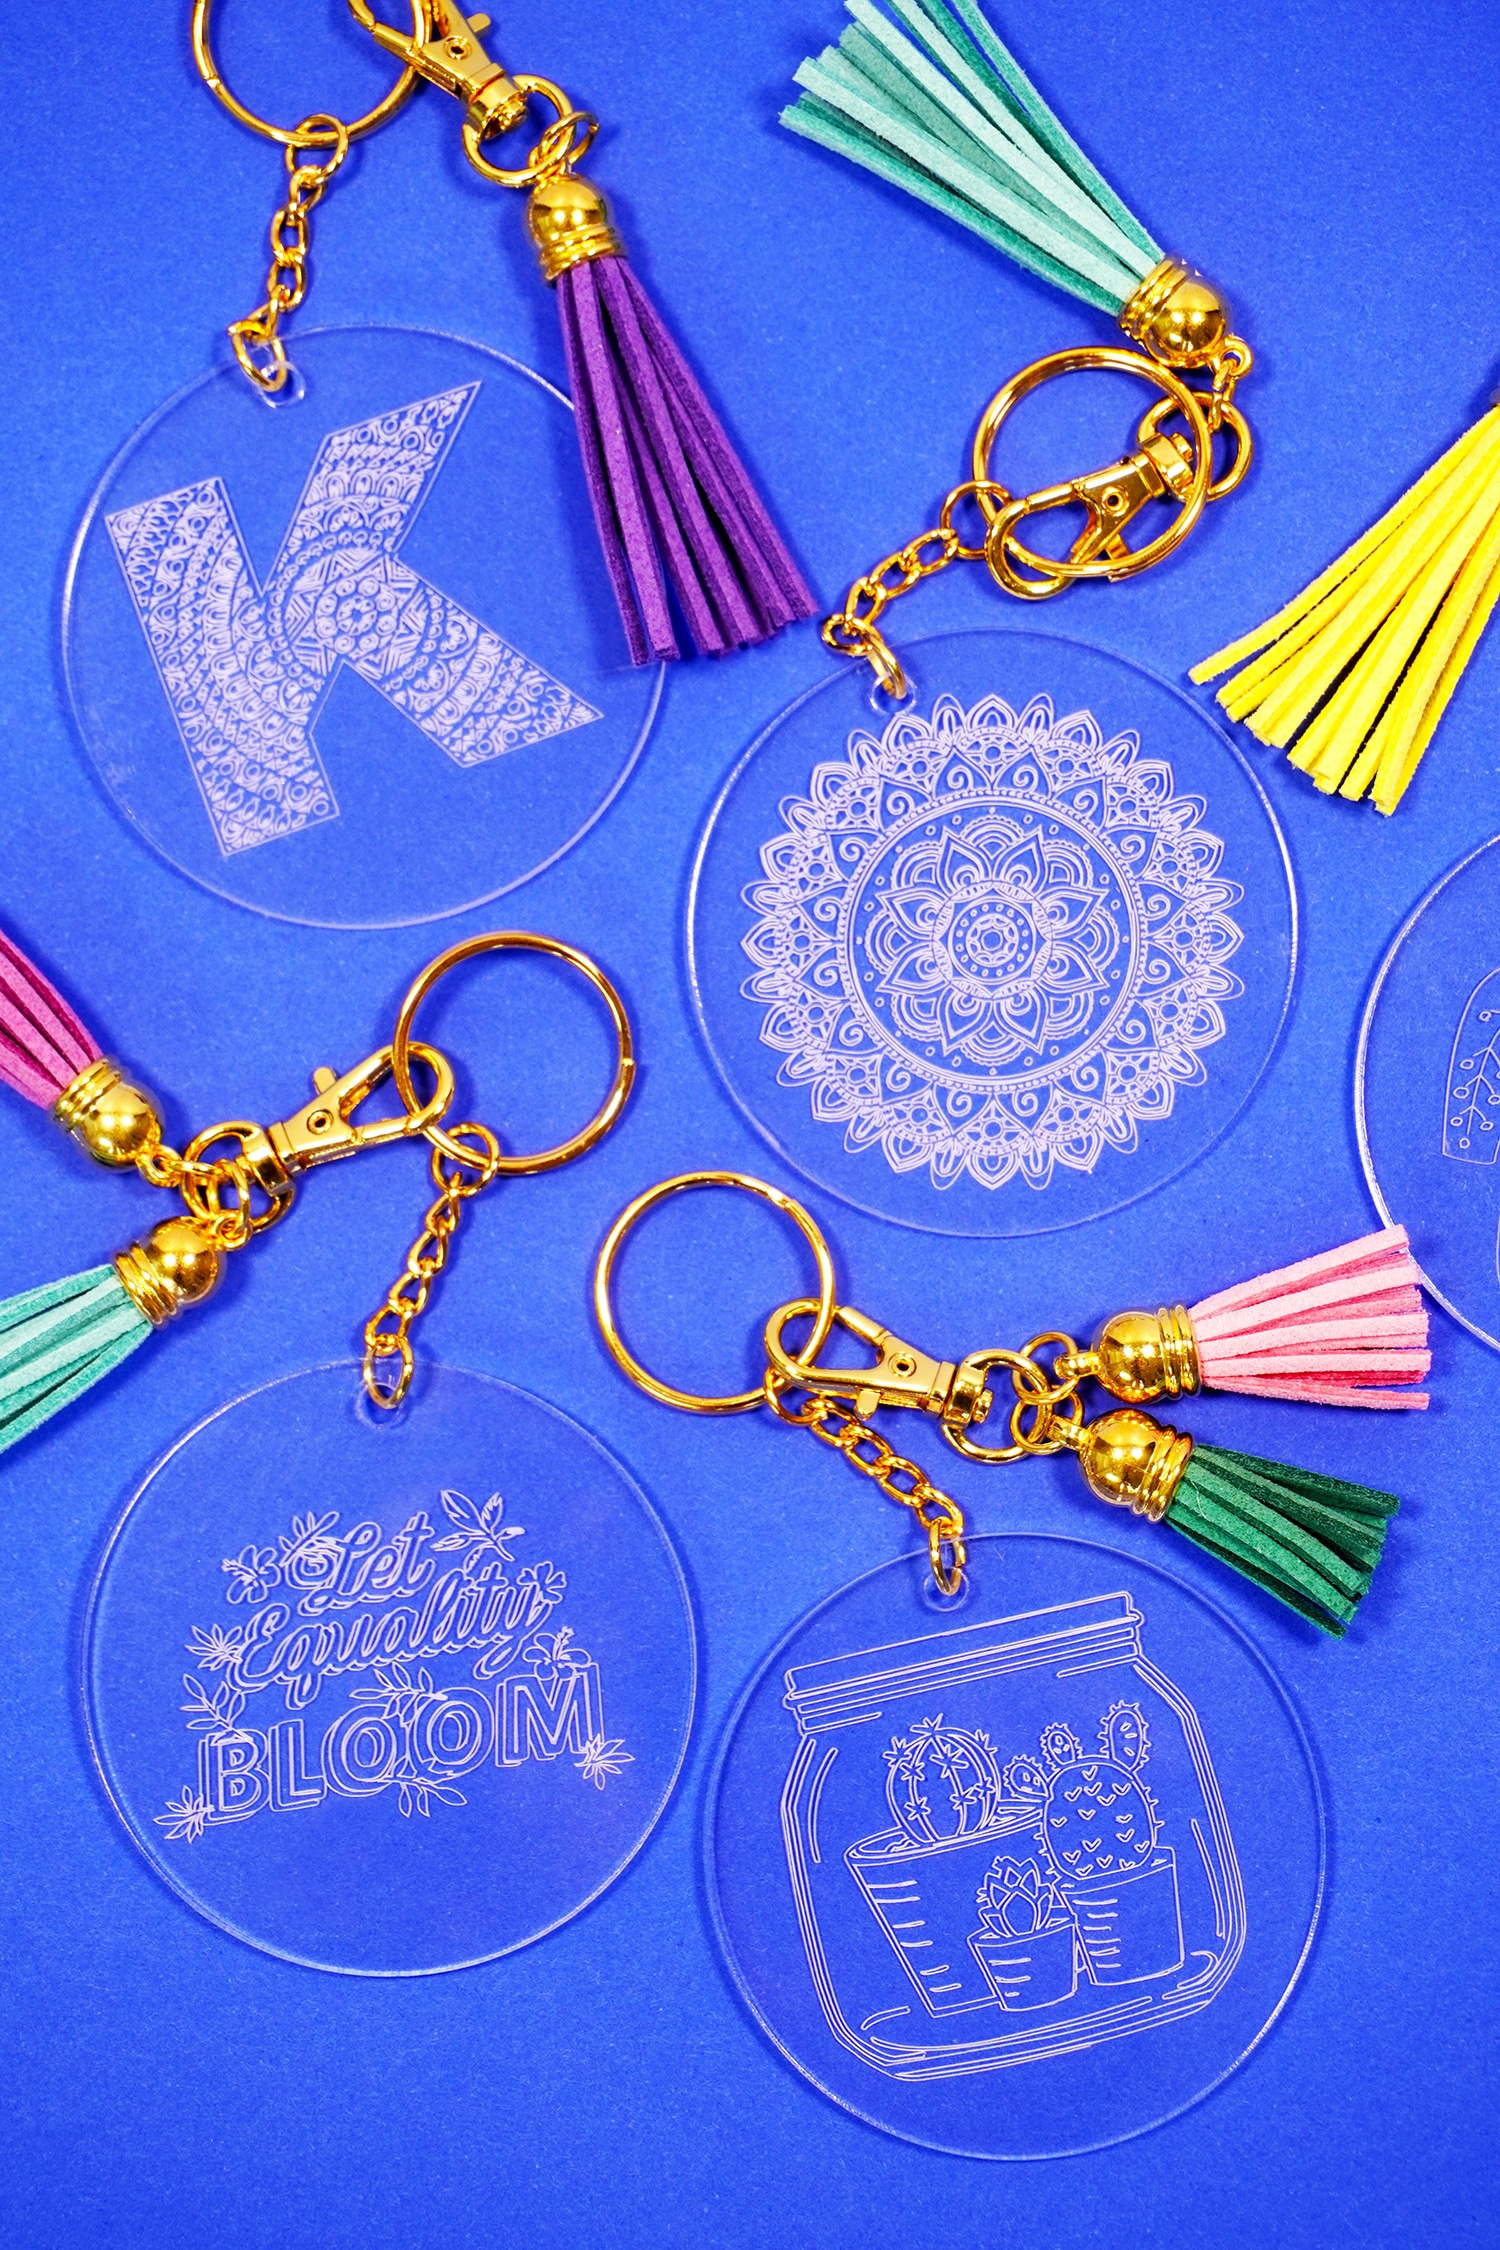 Cricut Maker engraved acrylic keychains made with the Cricut Engraving tool